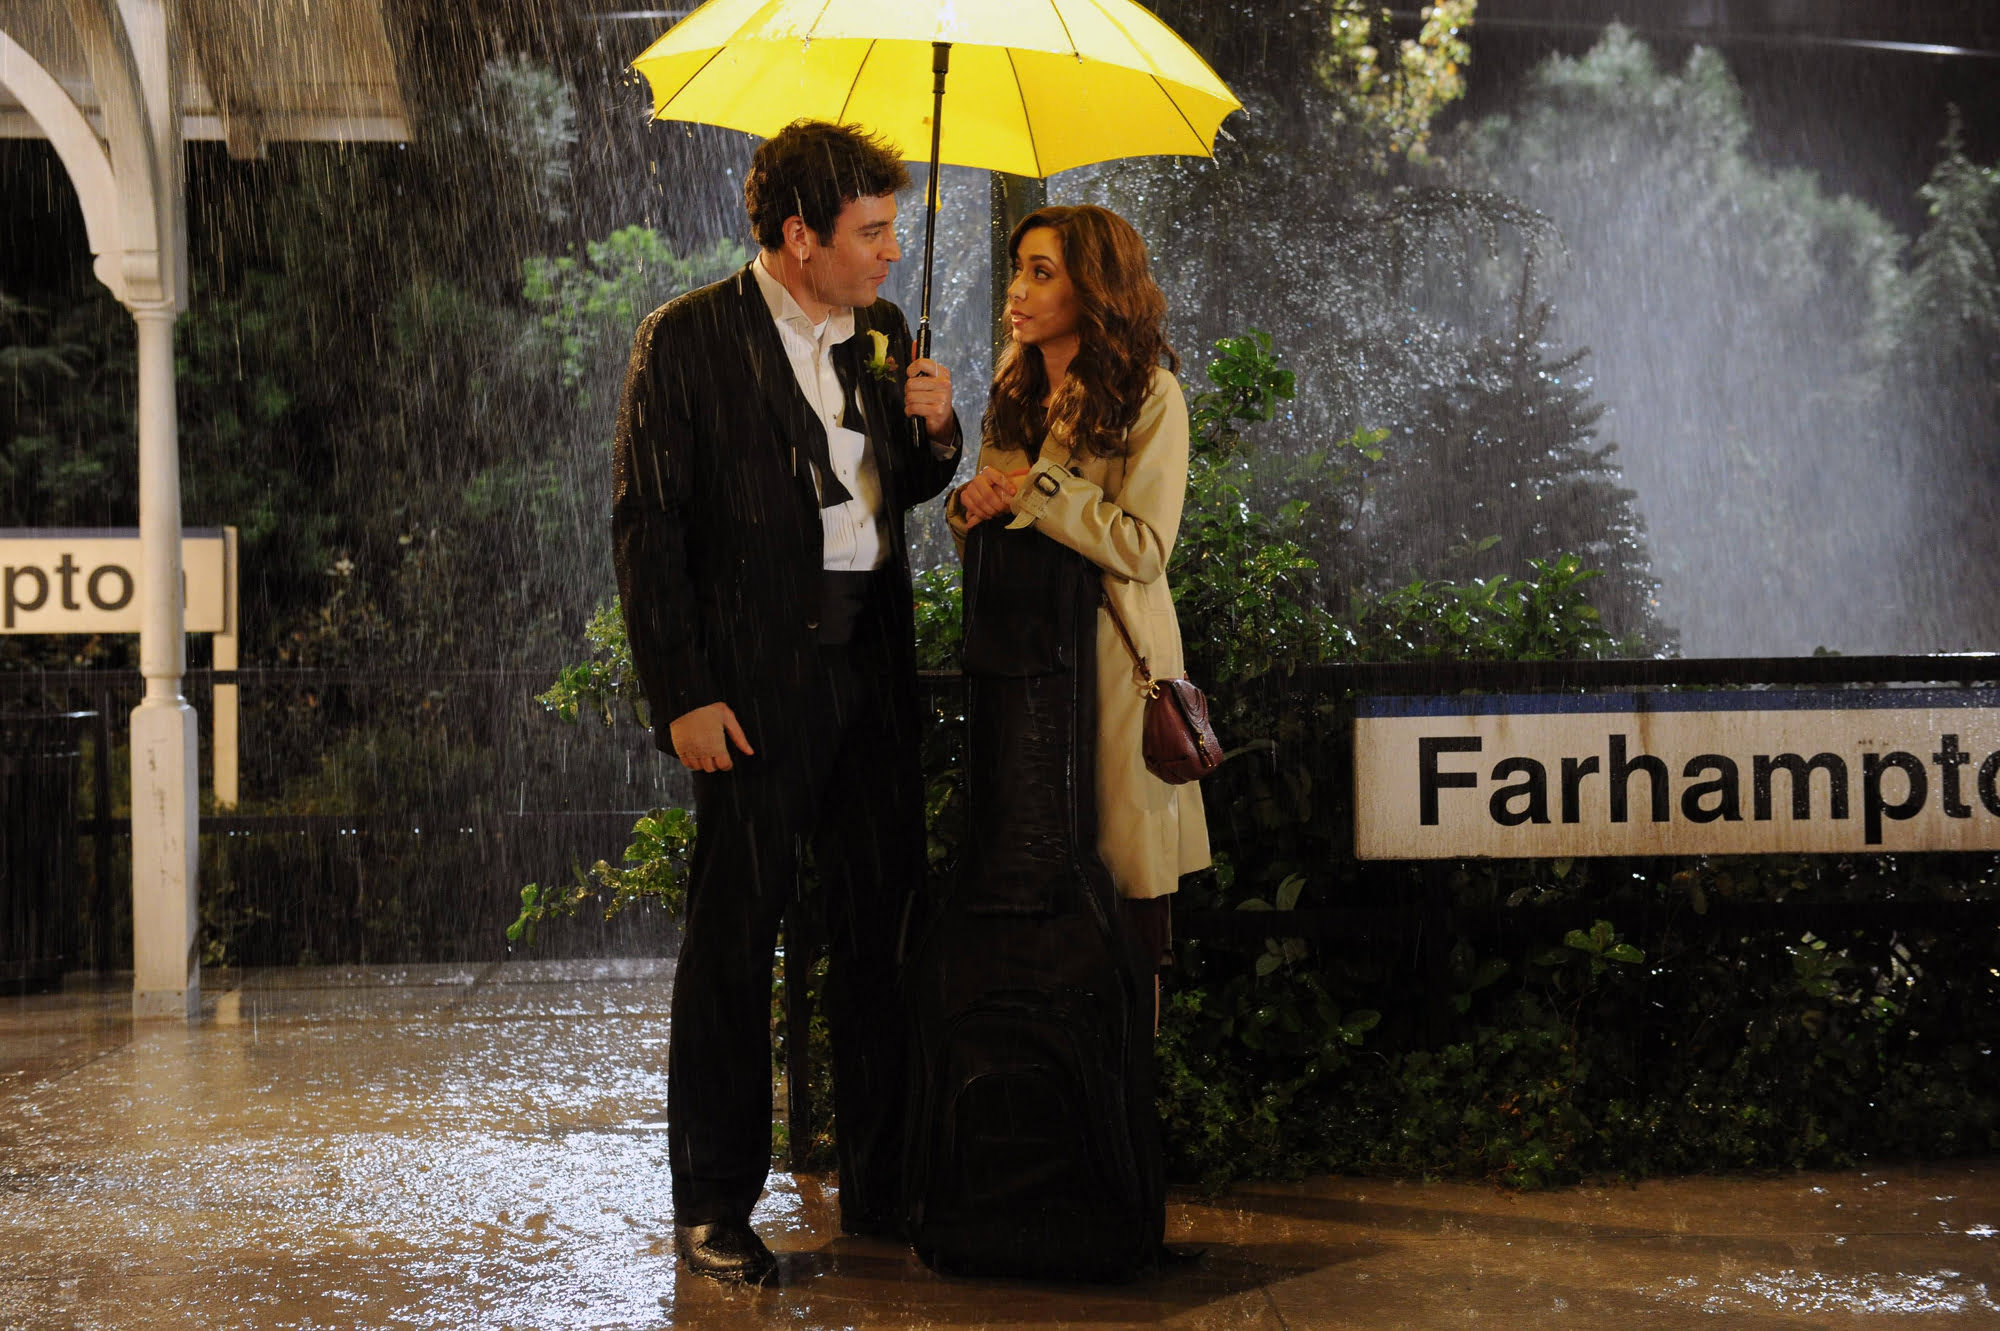 How I Met Your Mother - Farhampton station